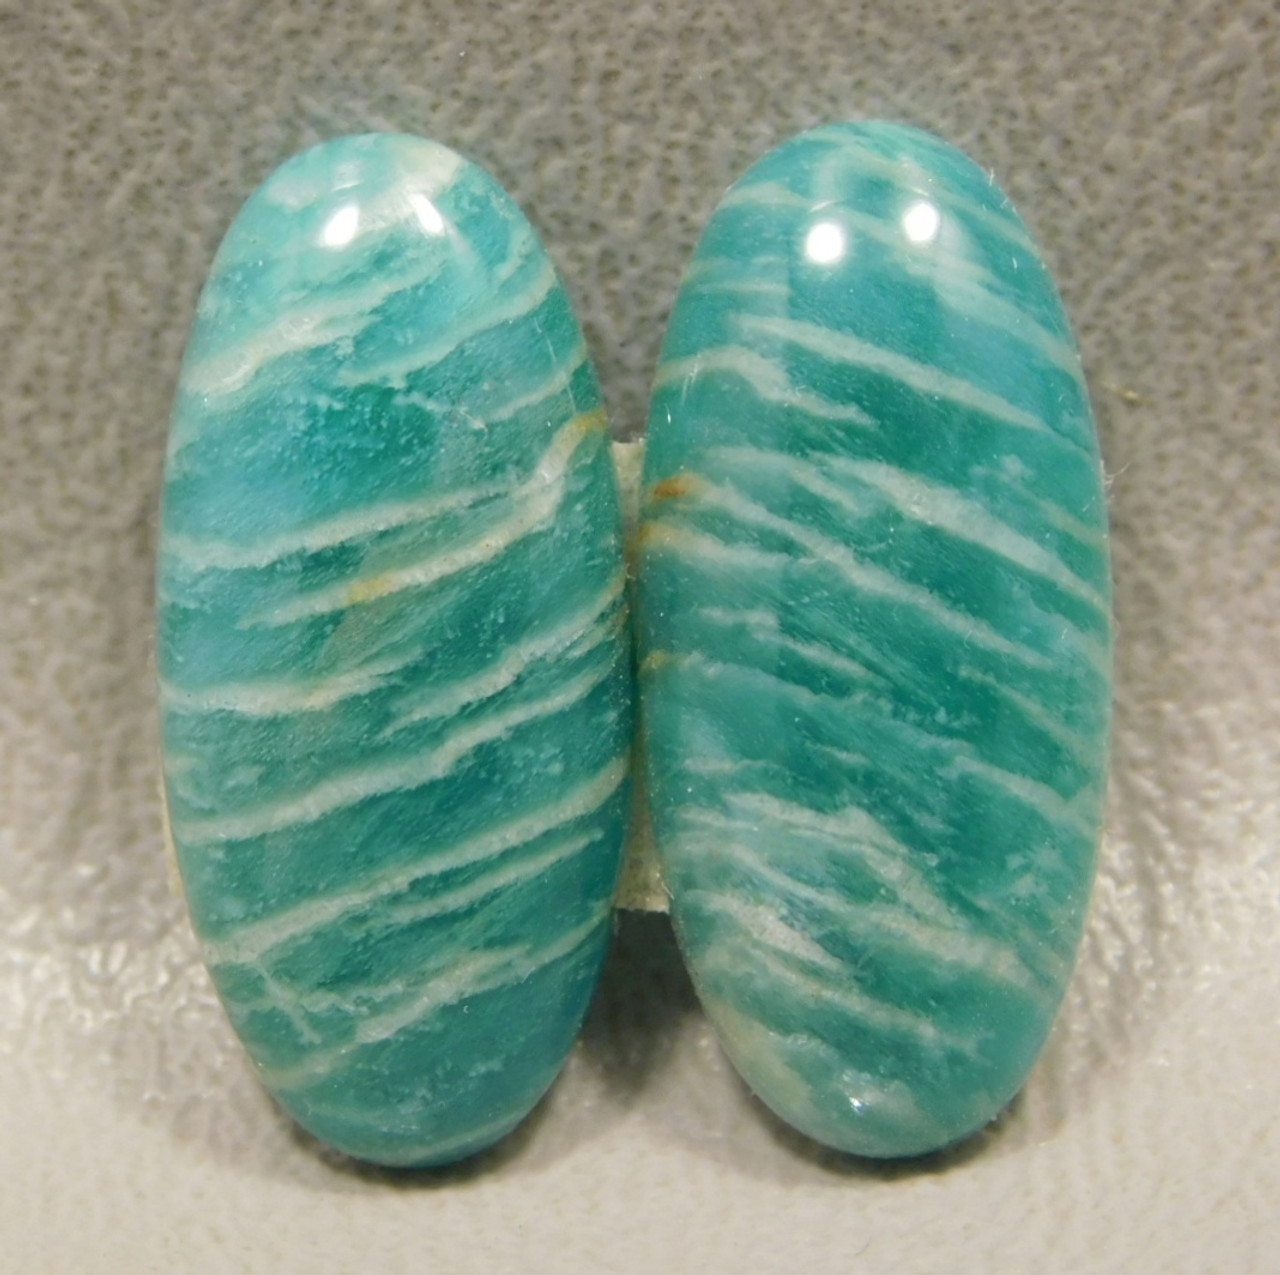 Amazonite Matched Pair Cabochons Stones Jewelry Supplies #7